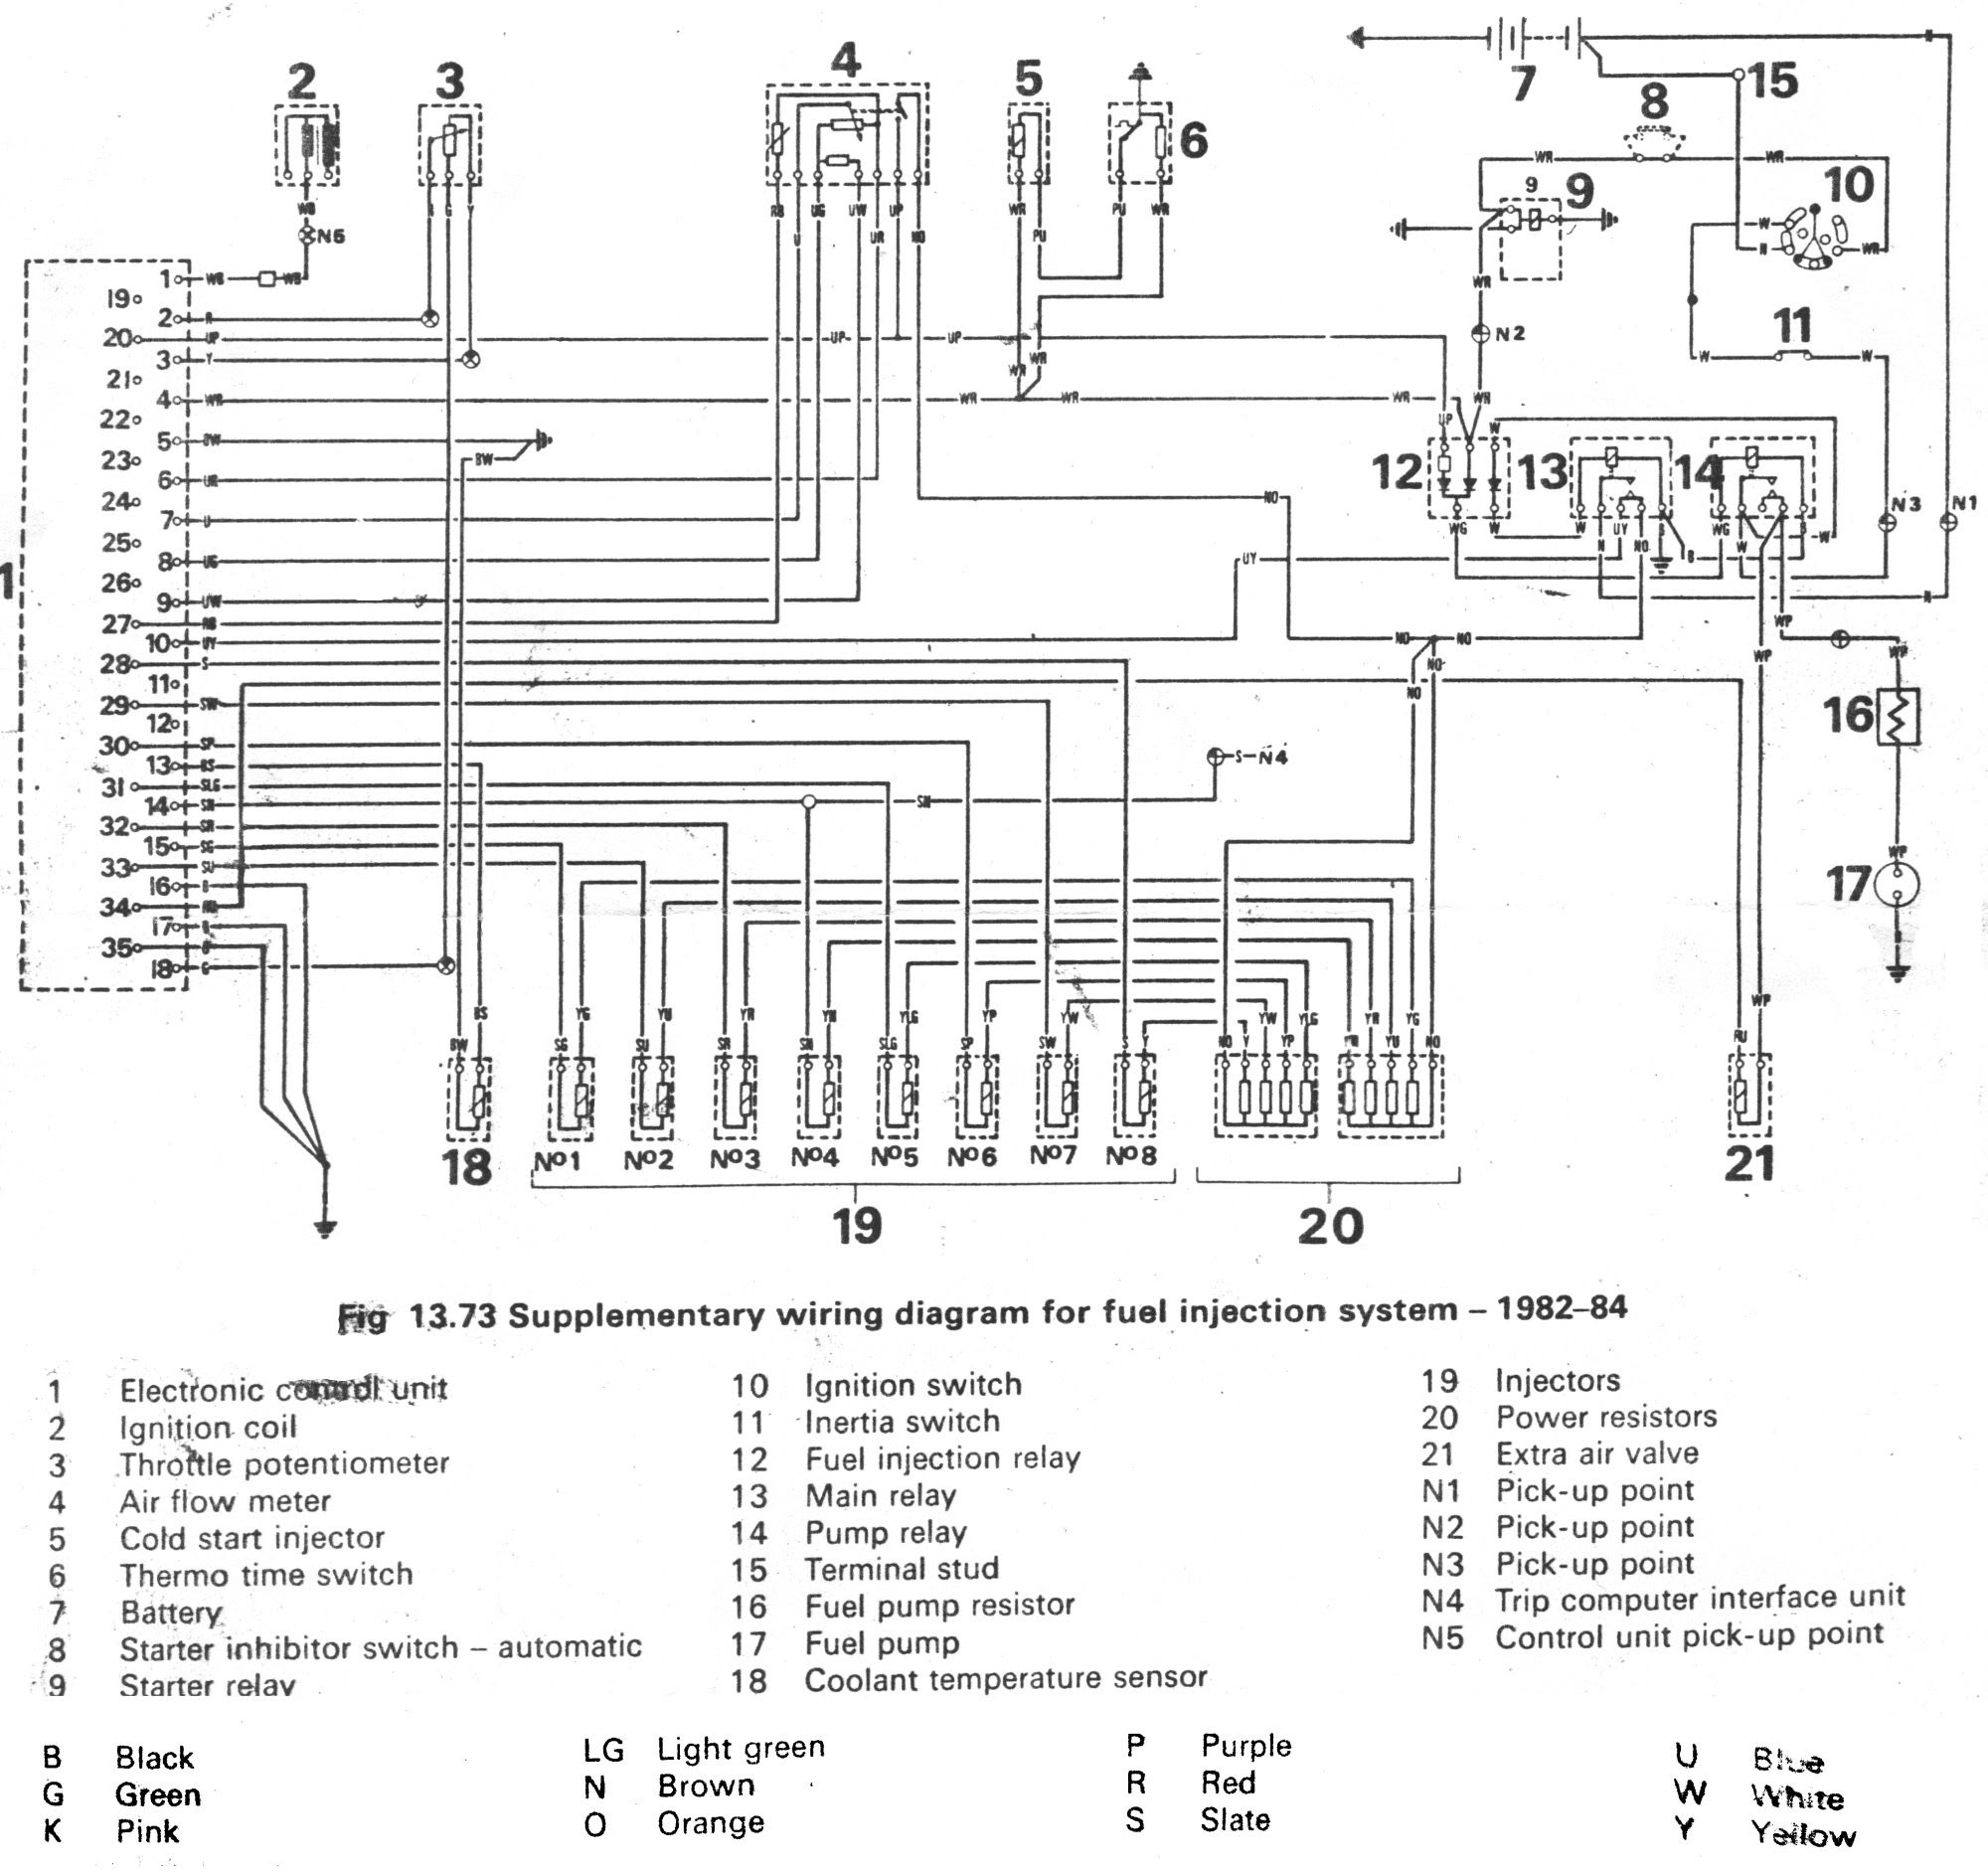 Wiring Schematic For 1986 Chevy Pickup